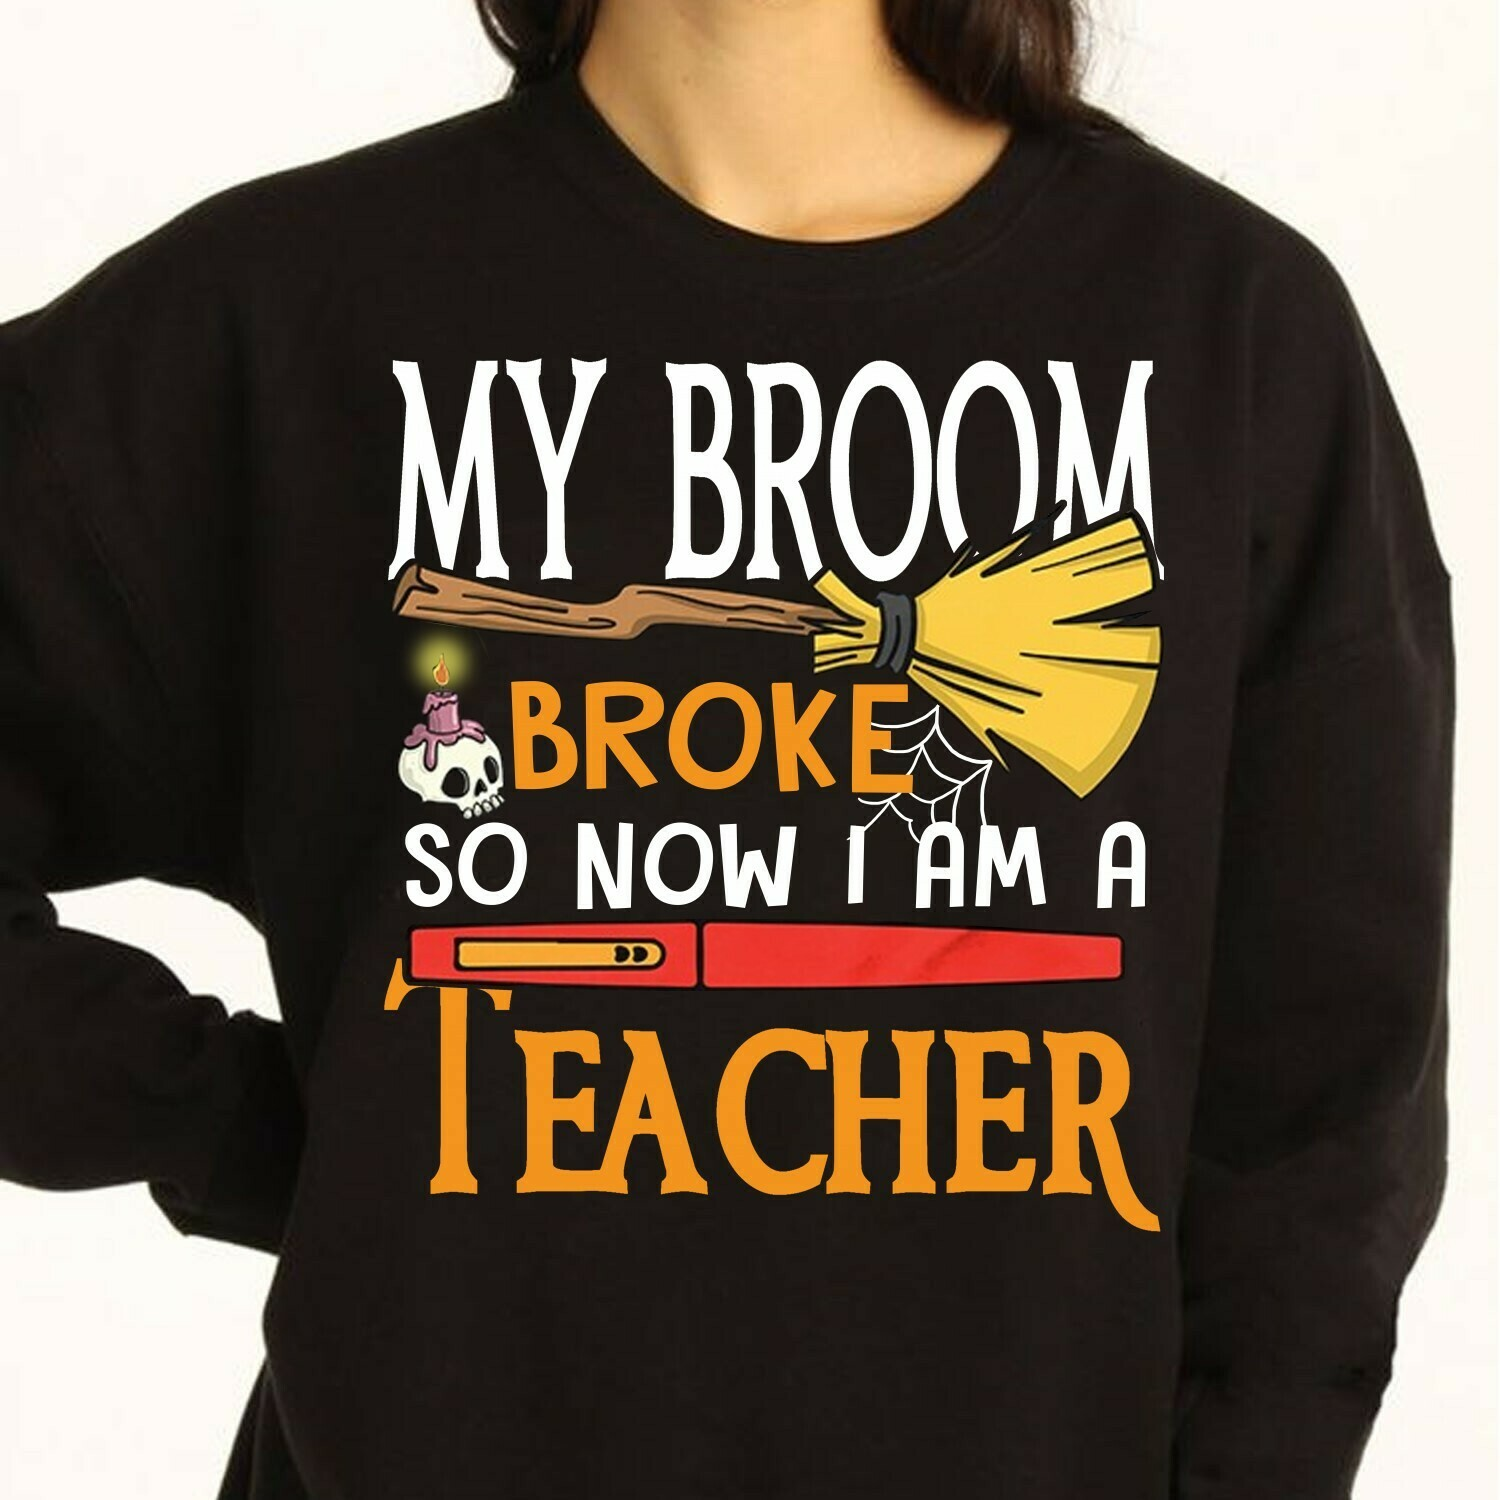 My Broom Broke So Now I Am A Teacher ,Witch Teacher appreciation gifts,Funny shirt gift for Love teacherlife,Teacher funny birthday T shirt Long Sleeve Sweatshirt Hoodie Jolly Family Gifts